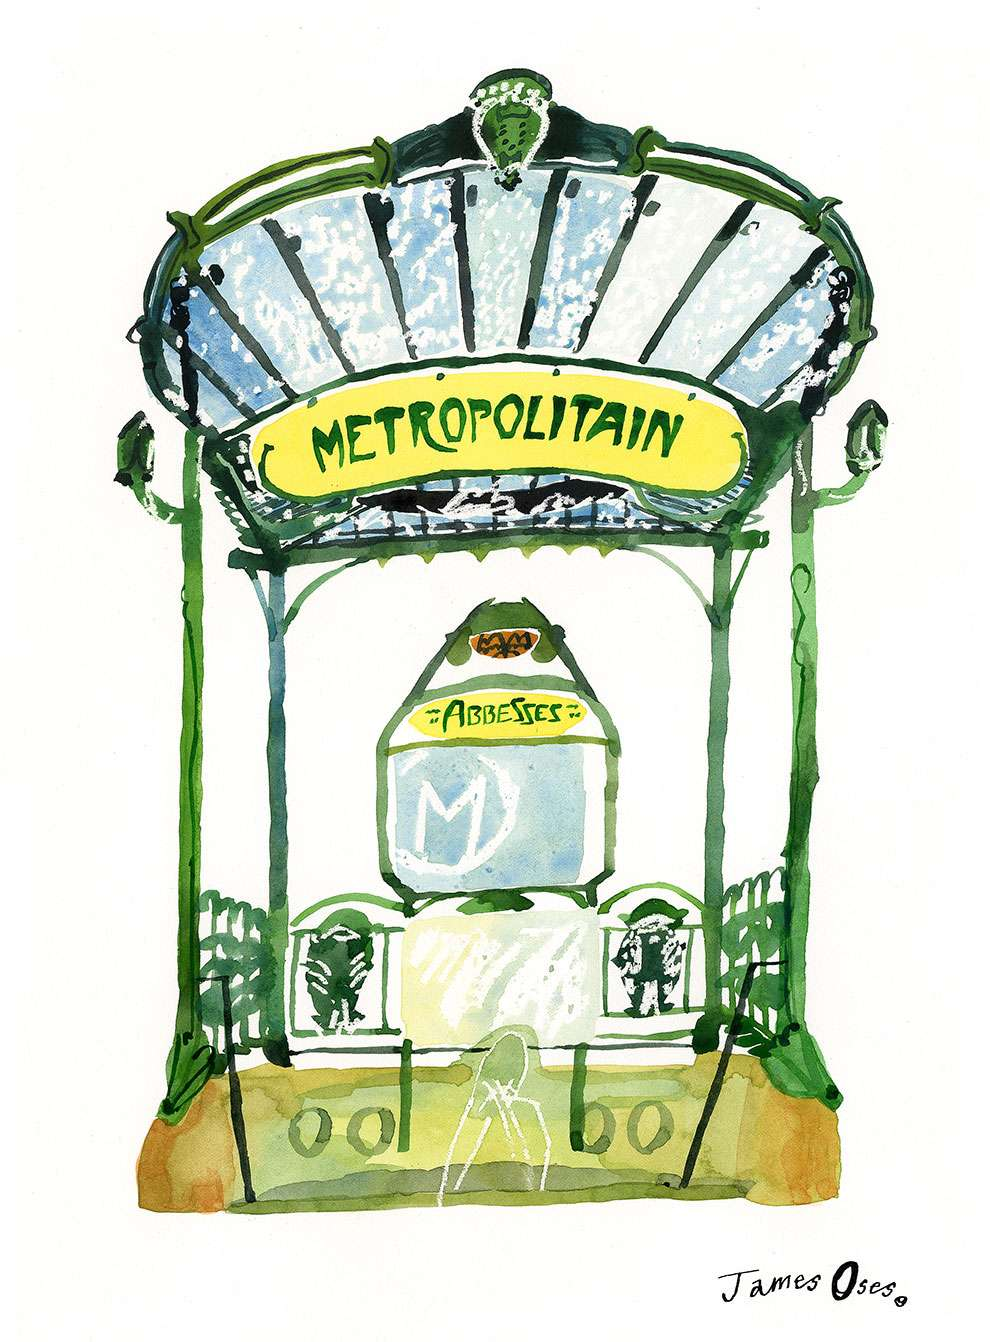 James Oses, Handpainted illustration of french tube station